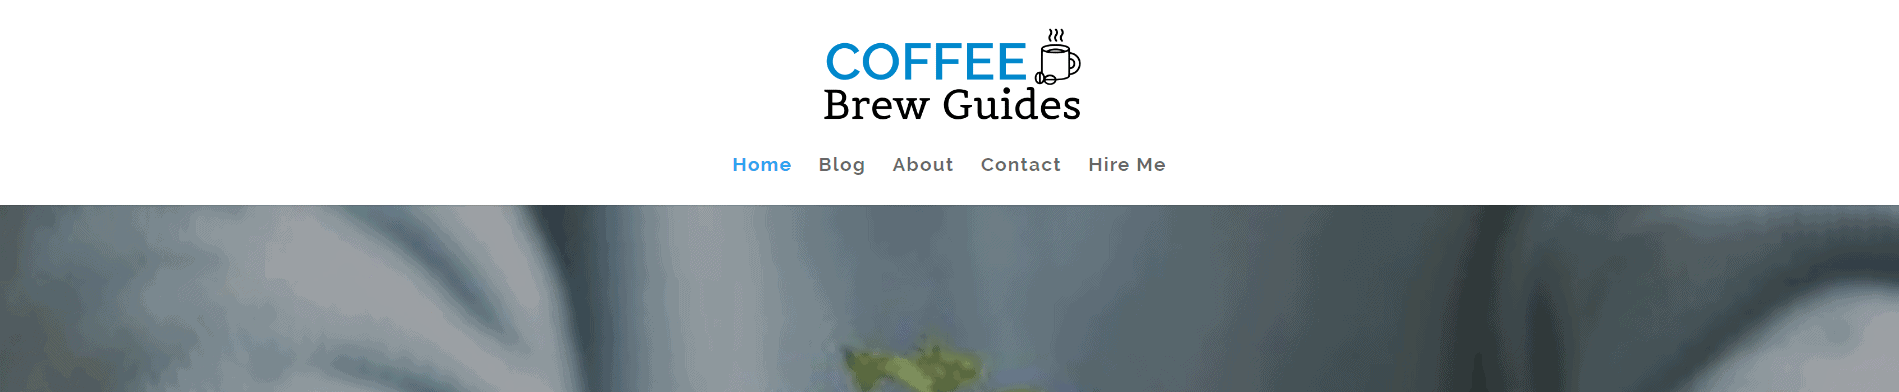 Coffee Brew Guides